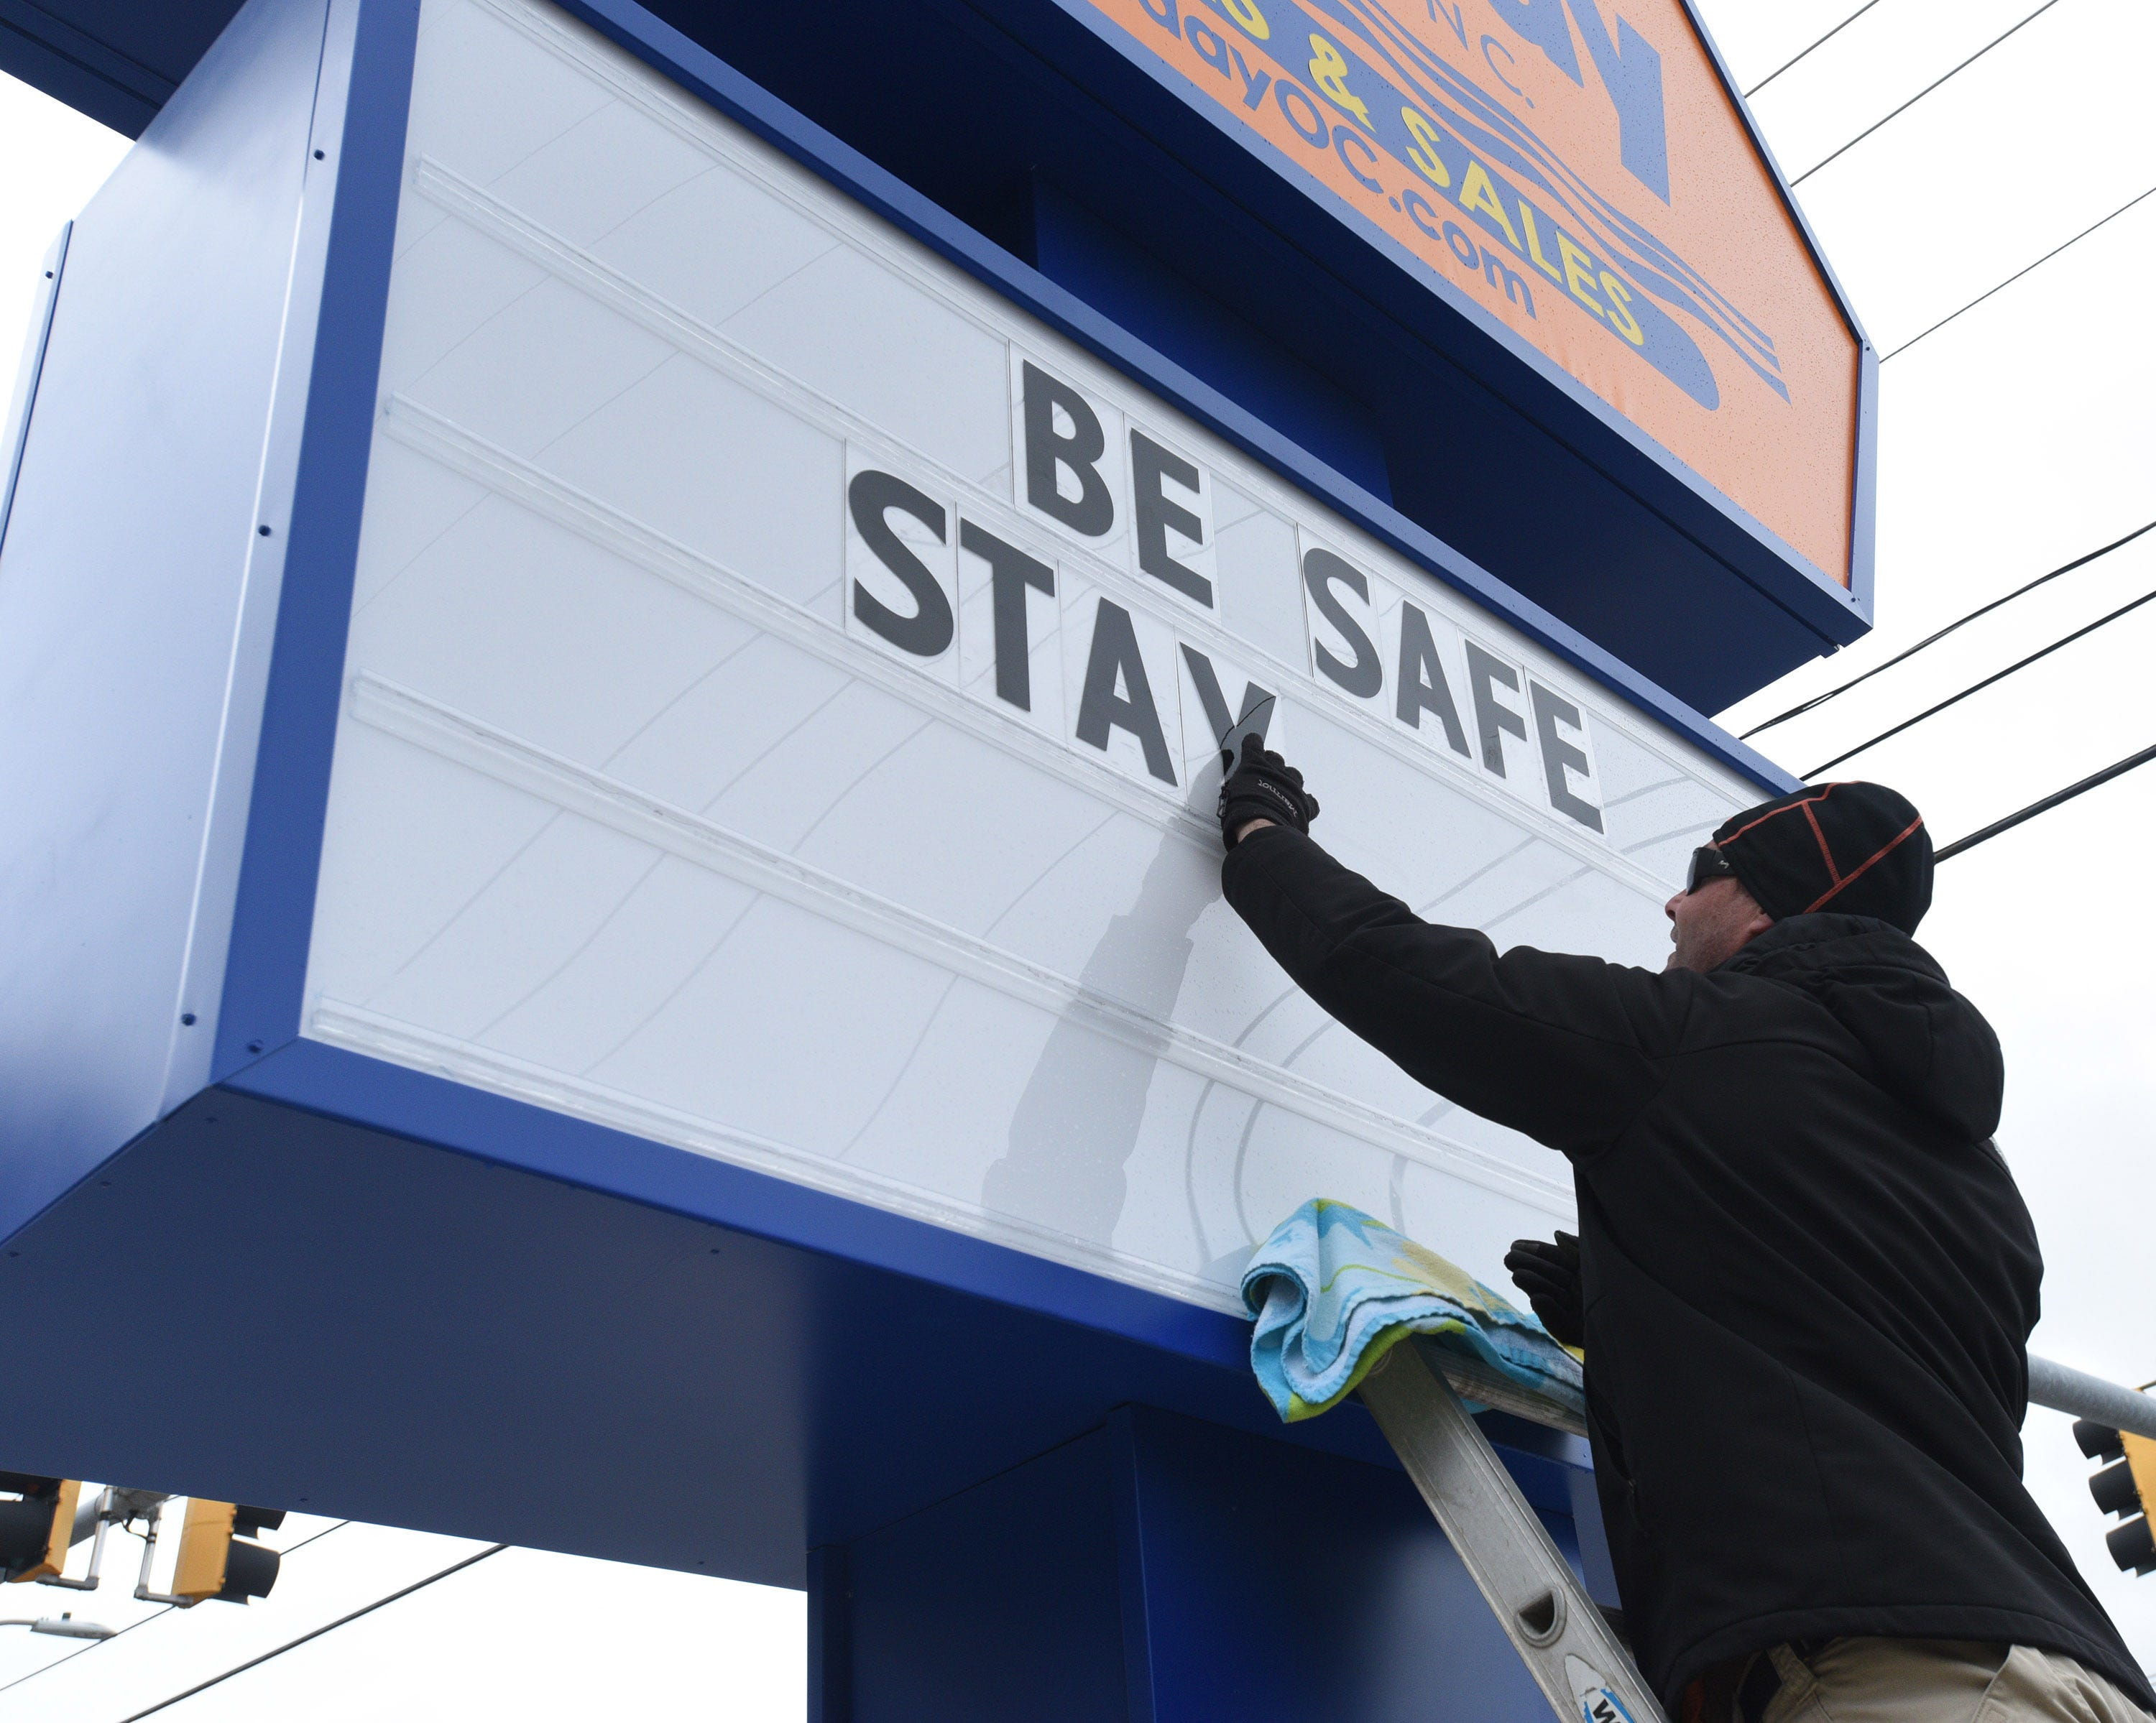 Todd Chandler of Ocean City places BE SAFE, STAY HOME letters on the sign at Holiday Real Estate Inc. at 77 Street in Ocean City on Wednesday, April 1, 2020.